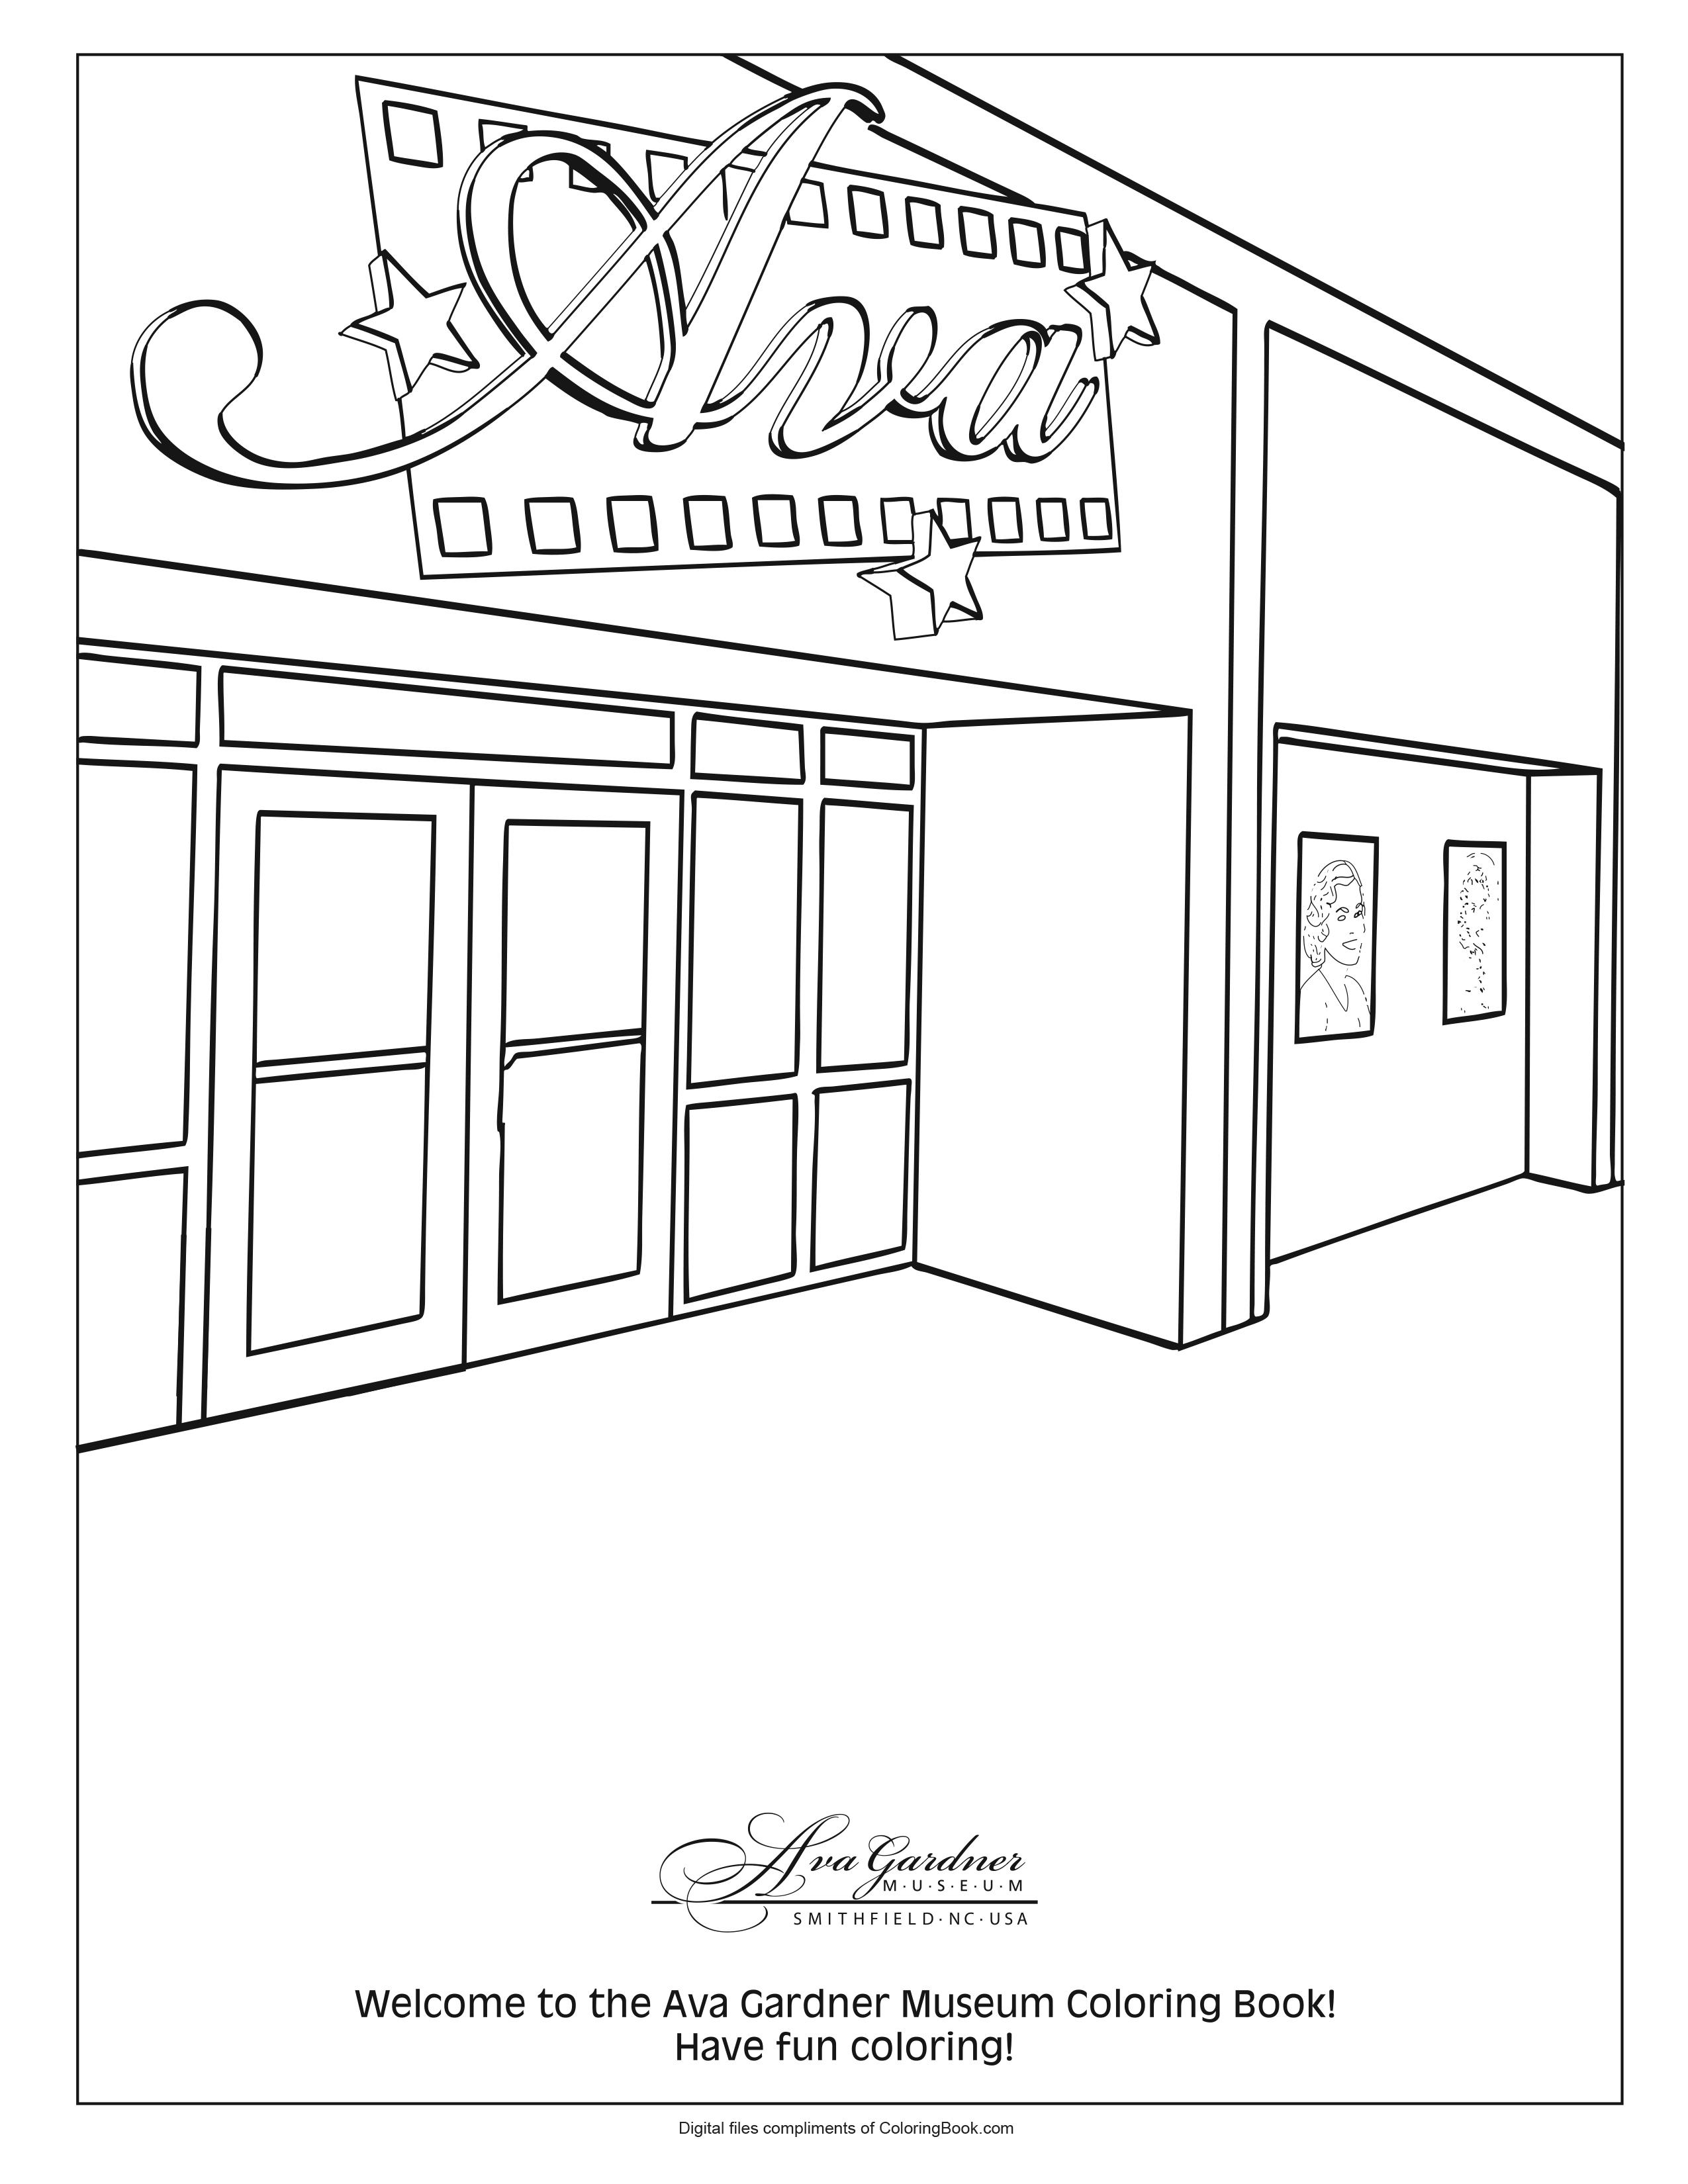 Ava Gardner Coloring Pages_1